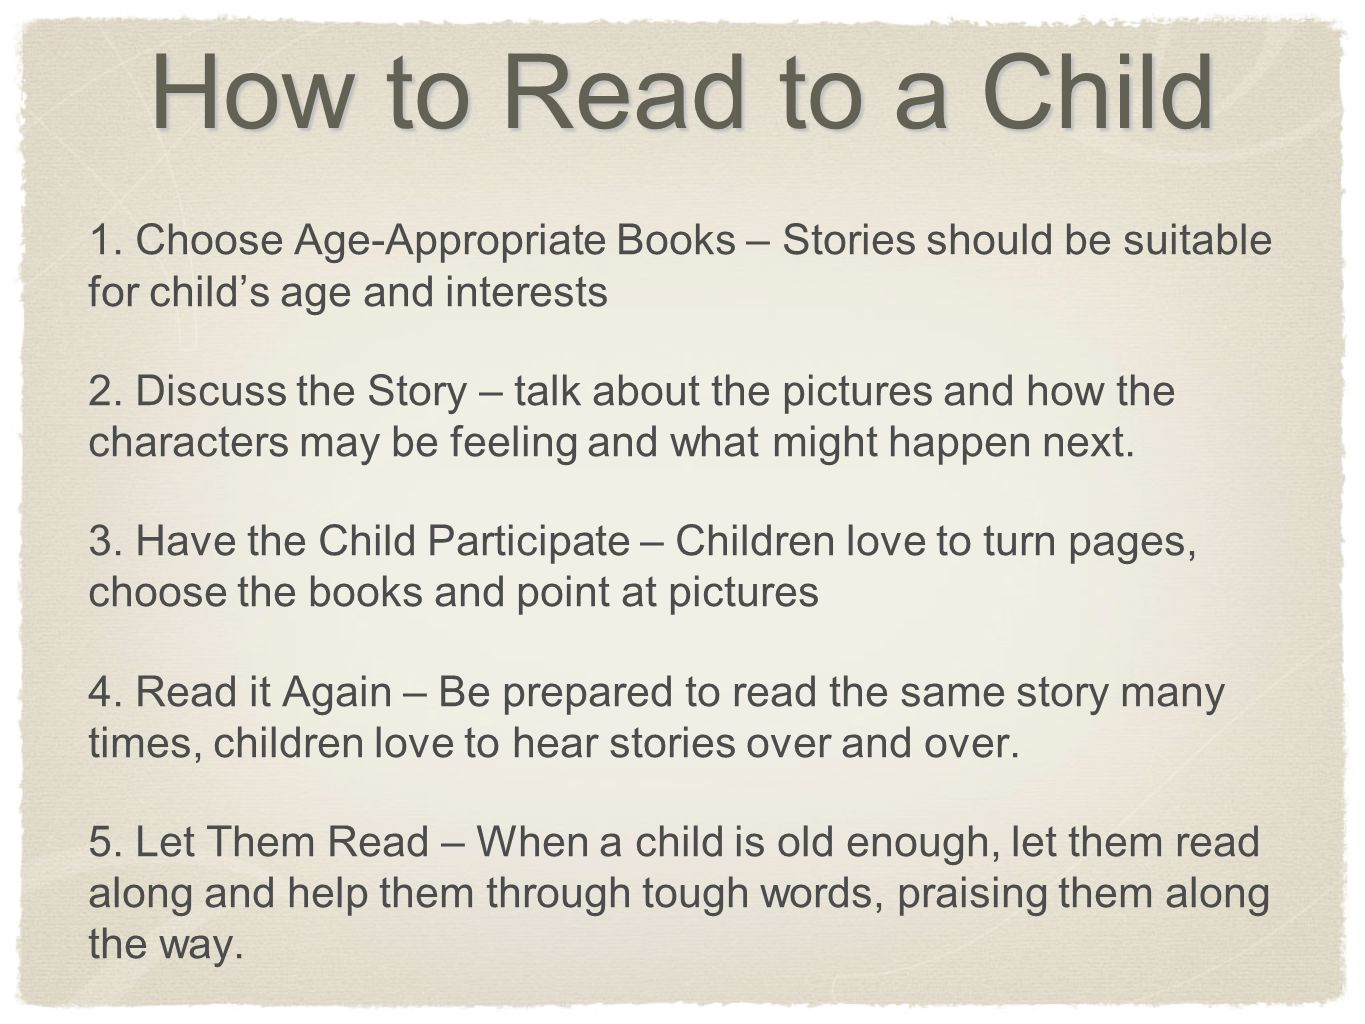 How to Read to a Child